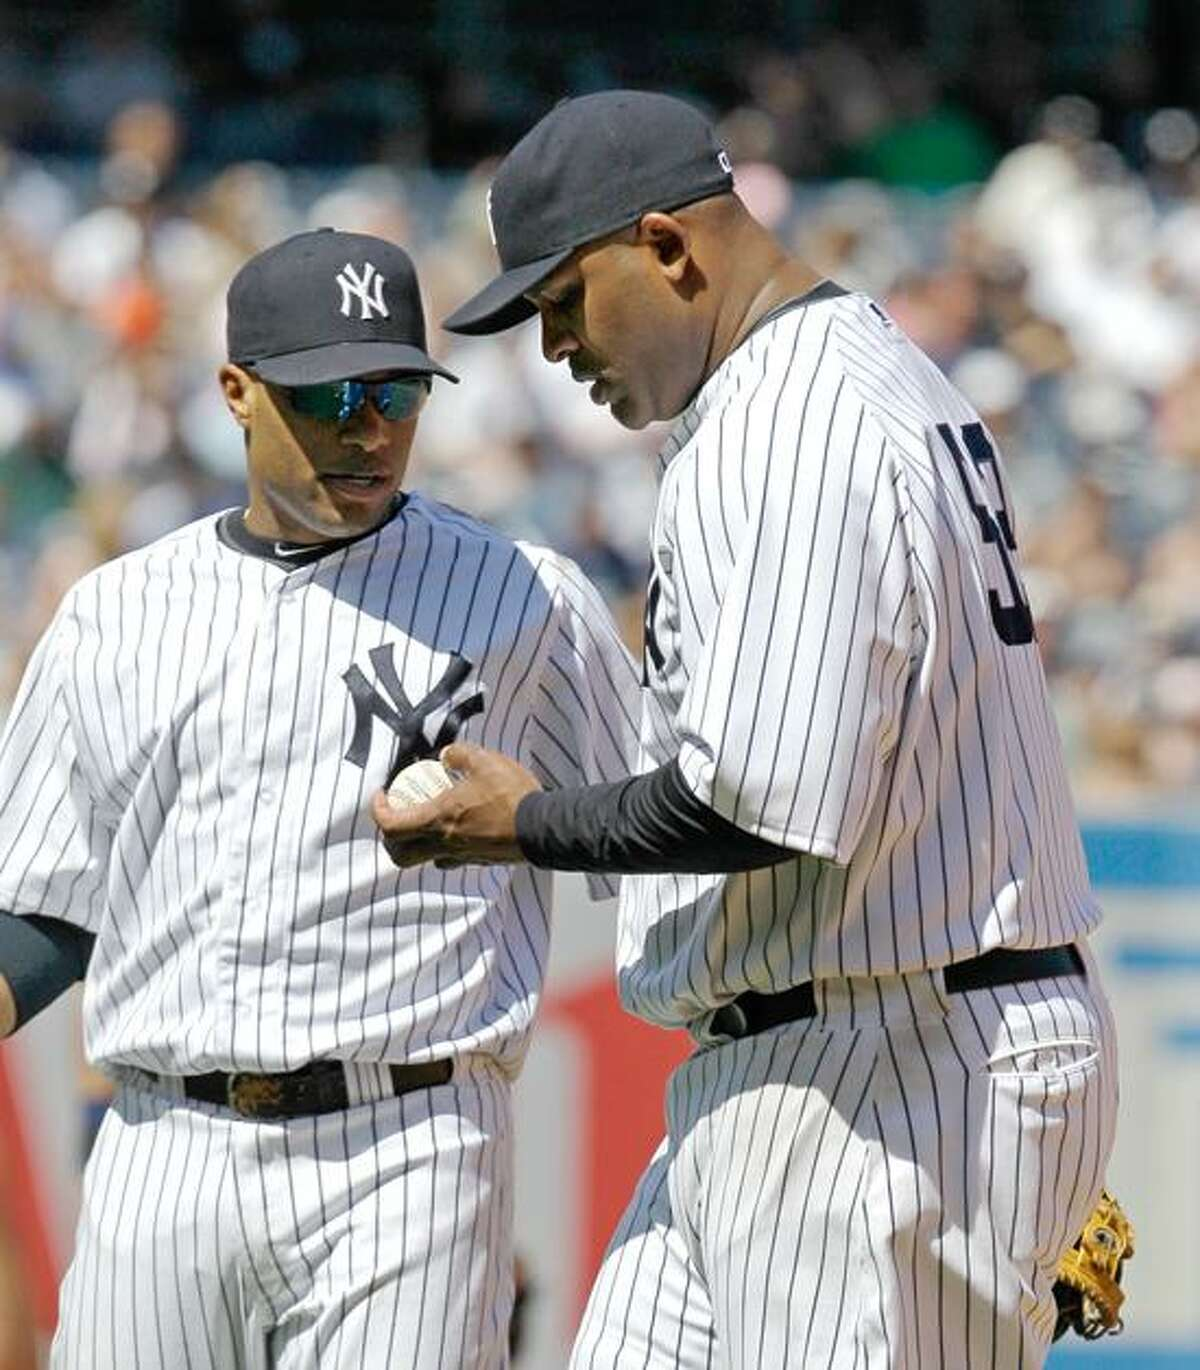 New York Yankees second baseman Robinson Cano, left, stands beside Yankees starting pitcher CC Sabathia in seventh inning of their 5-2 loss to the Cincinnati Reds in an interleague baseball game at Yankee Stadium in New York, Sunday, May 20, 2012. Sabathia walked in the go-ahead run in the loss. (AP Photo/Kathy Willens)